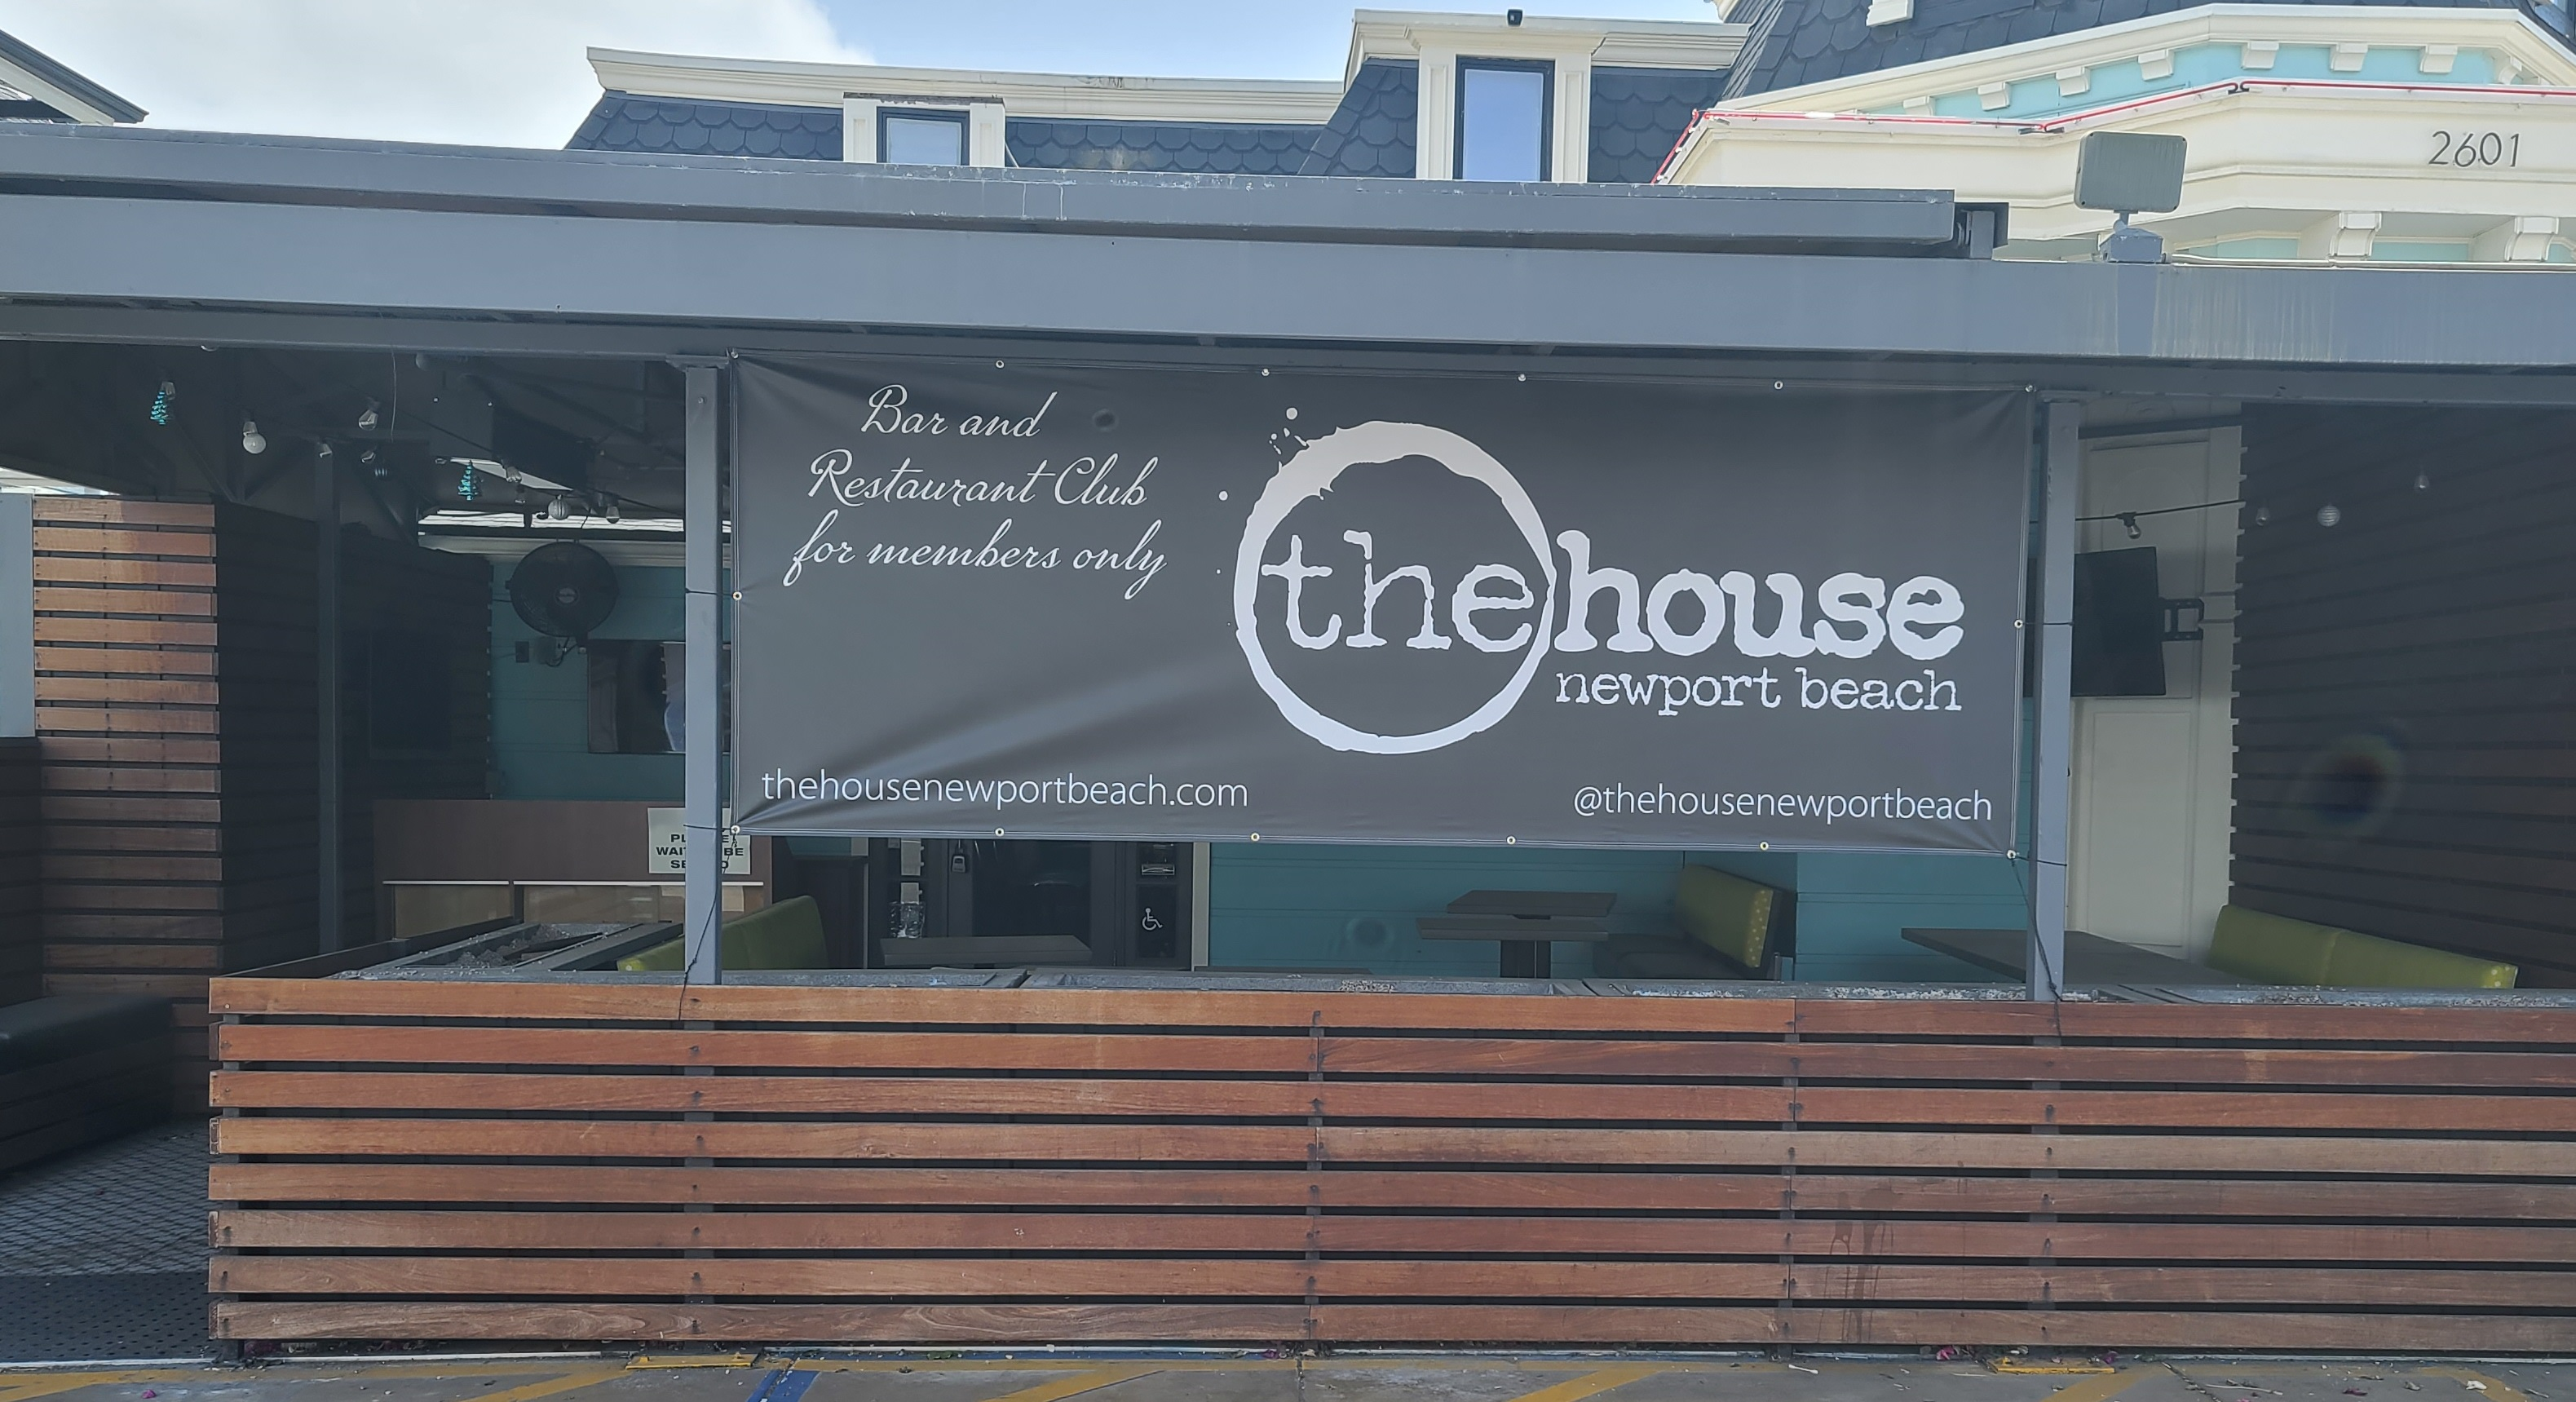 With this custom banner restaurant sign, The House Newport Beach can show off their members-only bar and restaurant club.